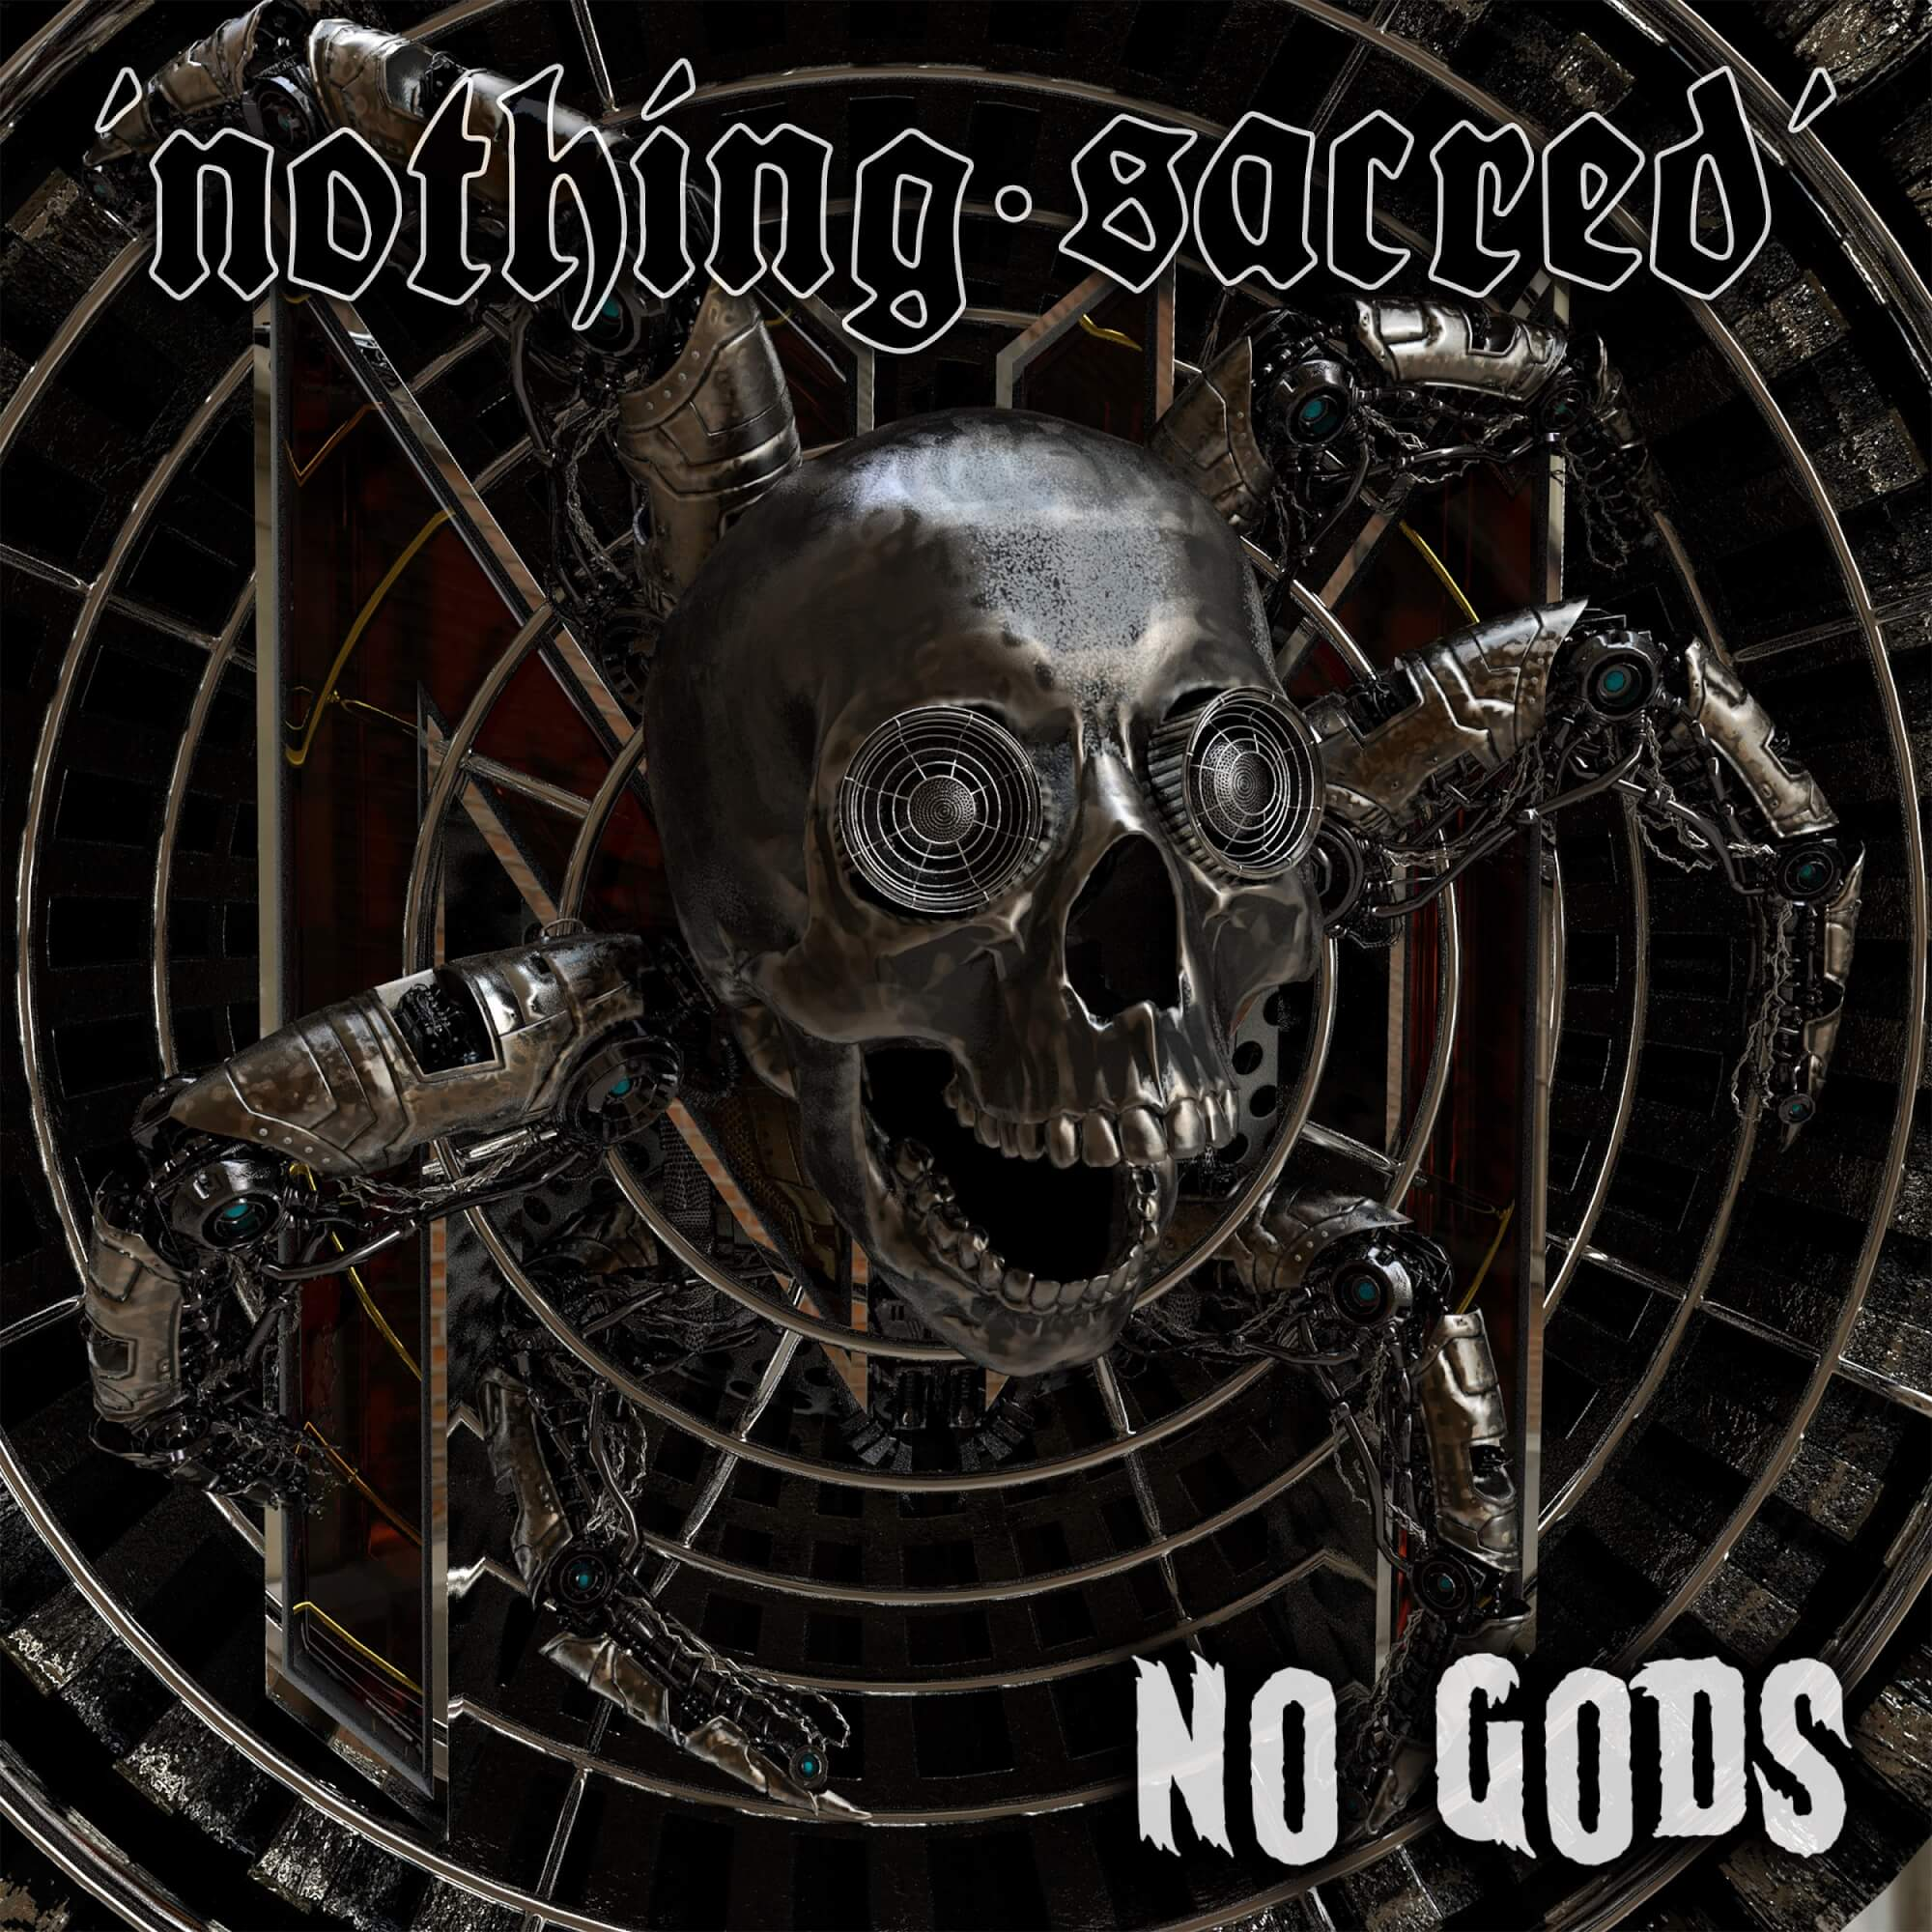 Nothing Scared Top Thirty